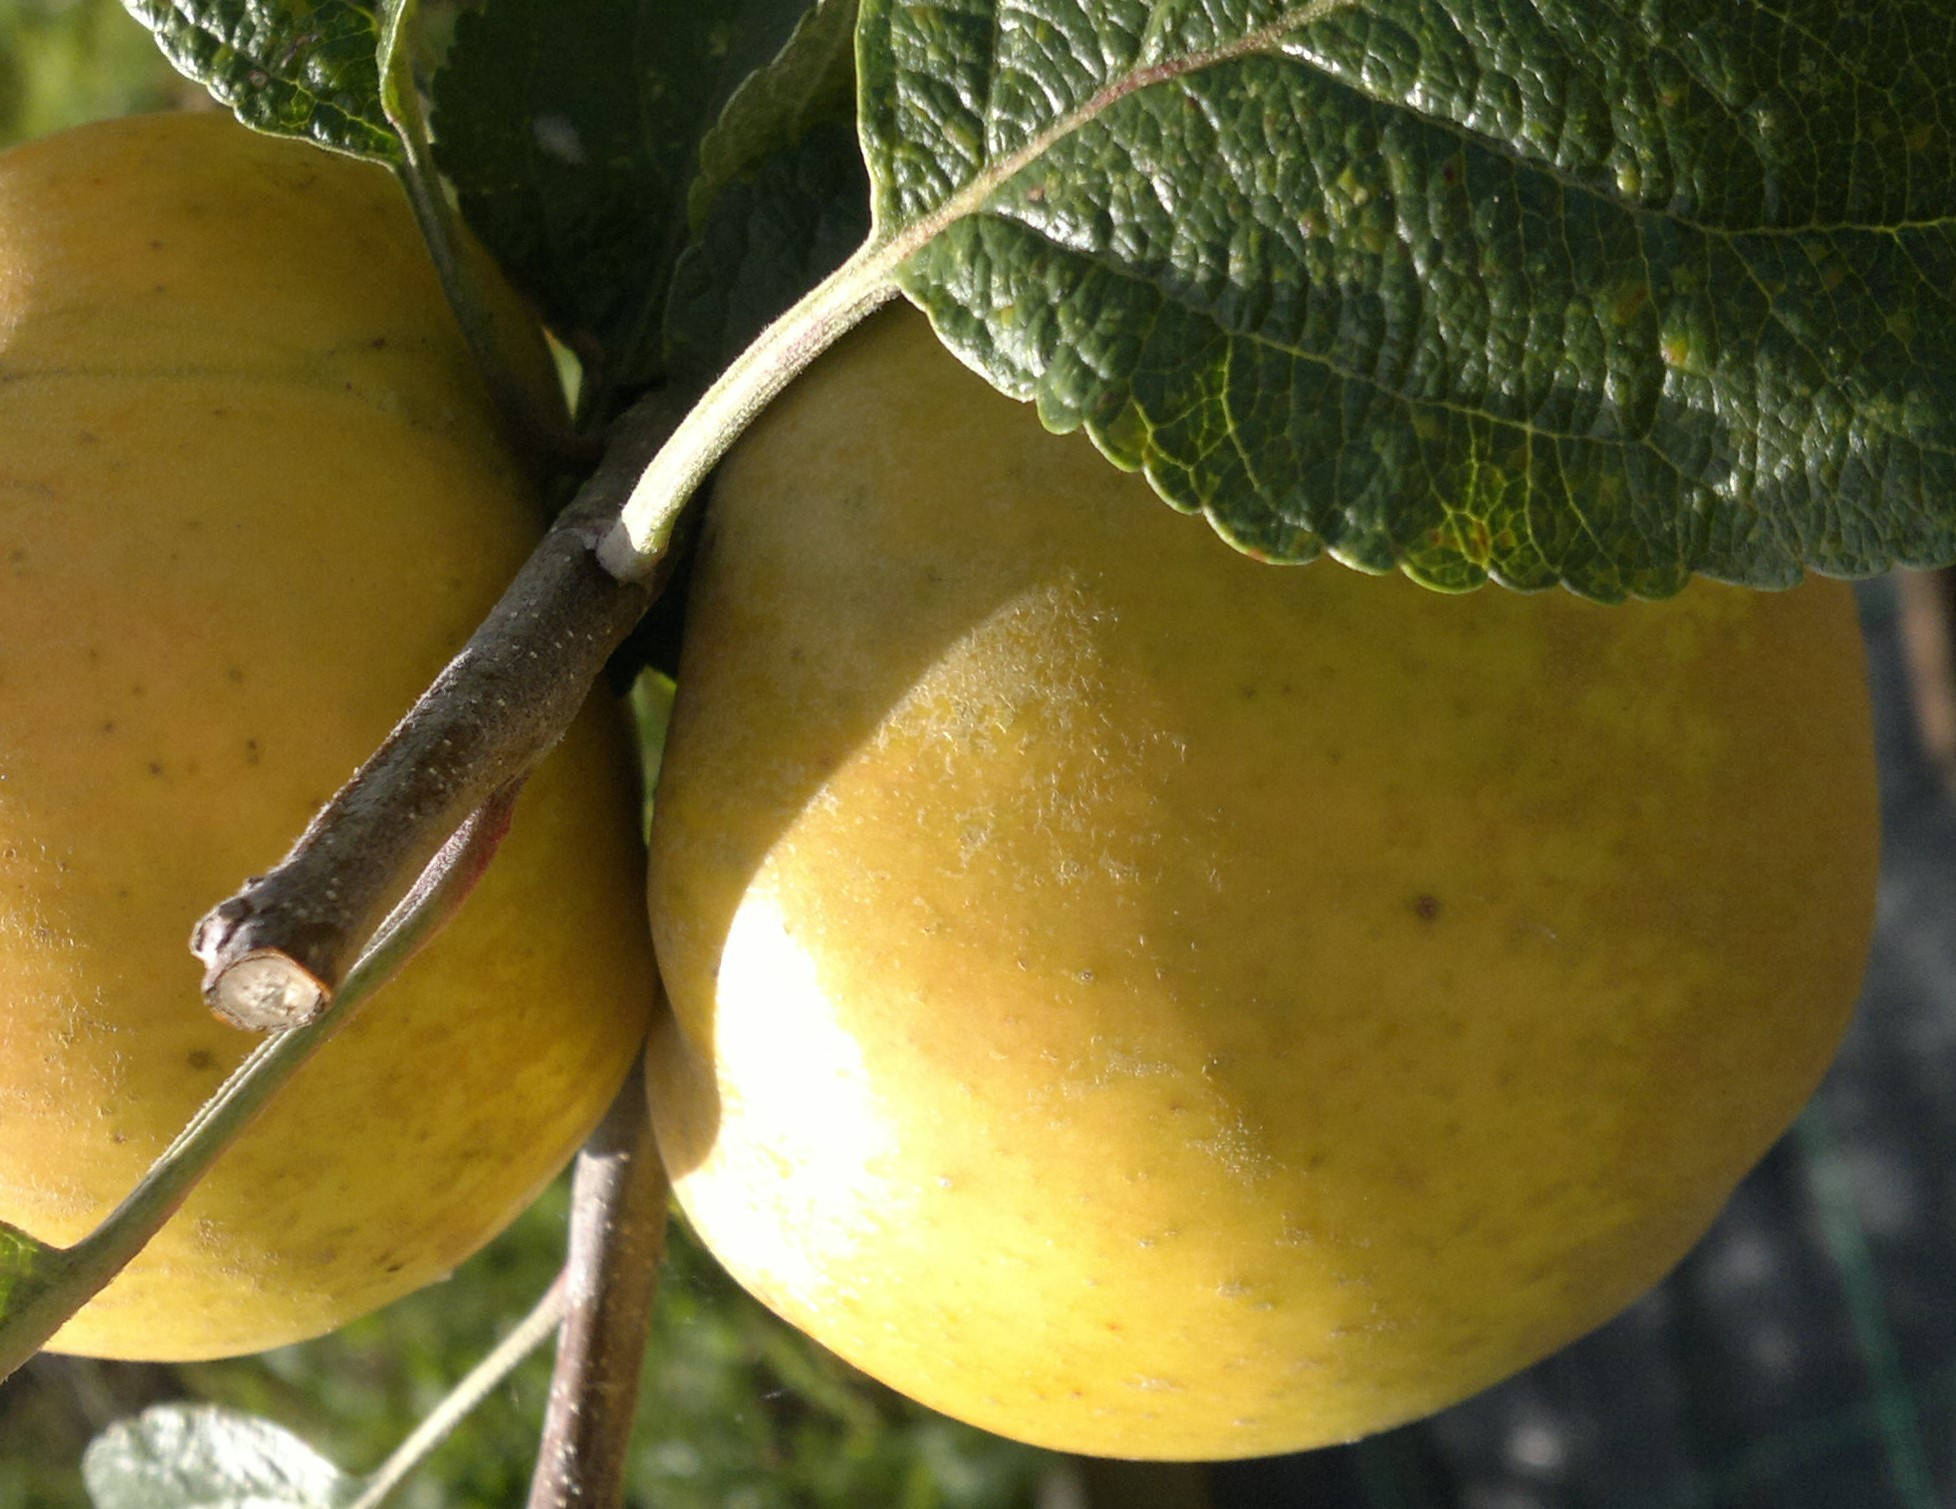 The golden russet of St Edmund's Pippin ripening on the tree